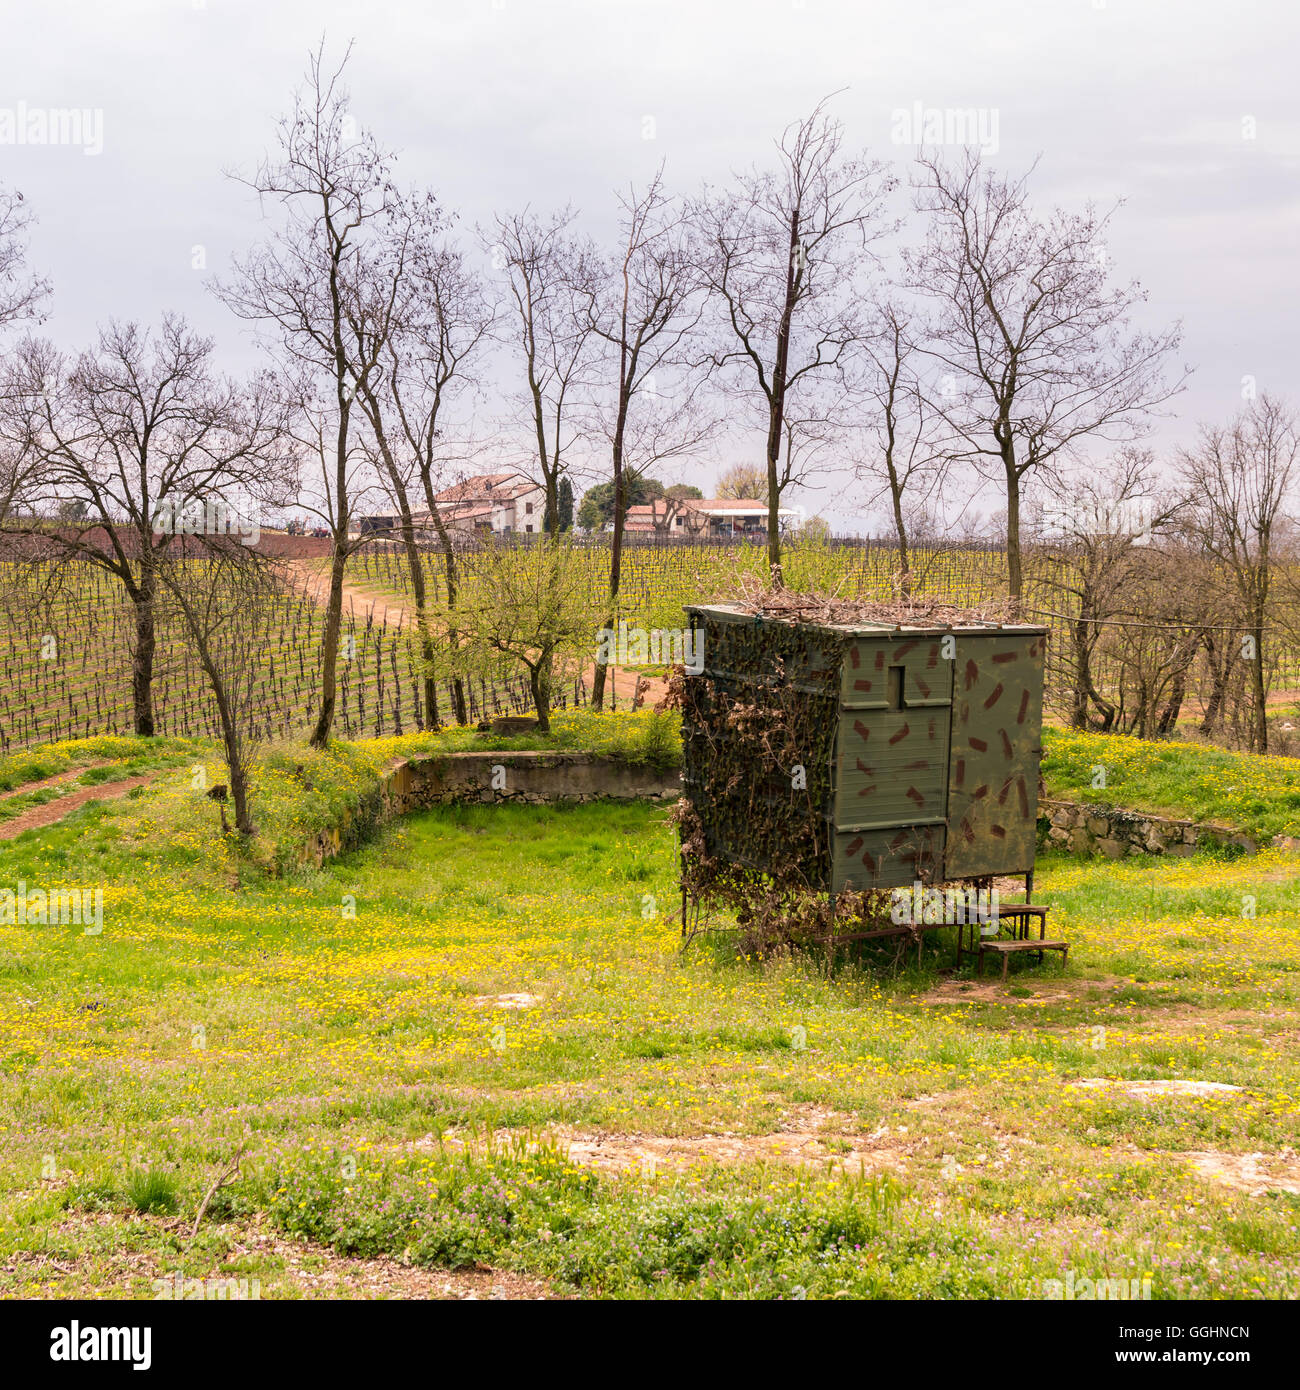 Camouflaged hut used to hunt migratory birds in Italy. - Stock Image